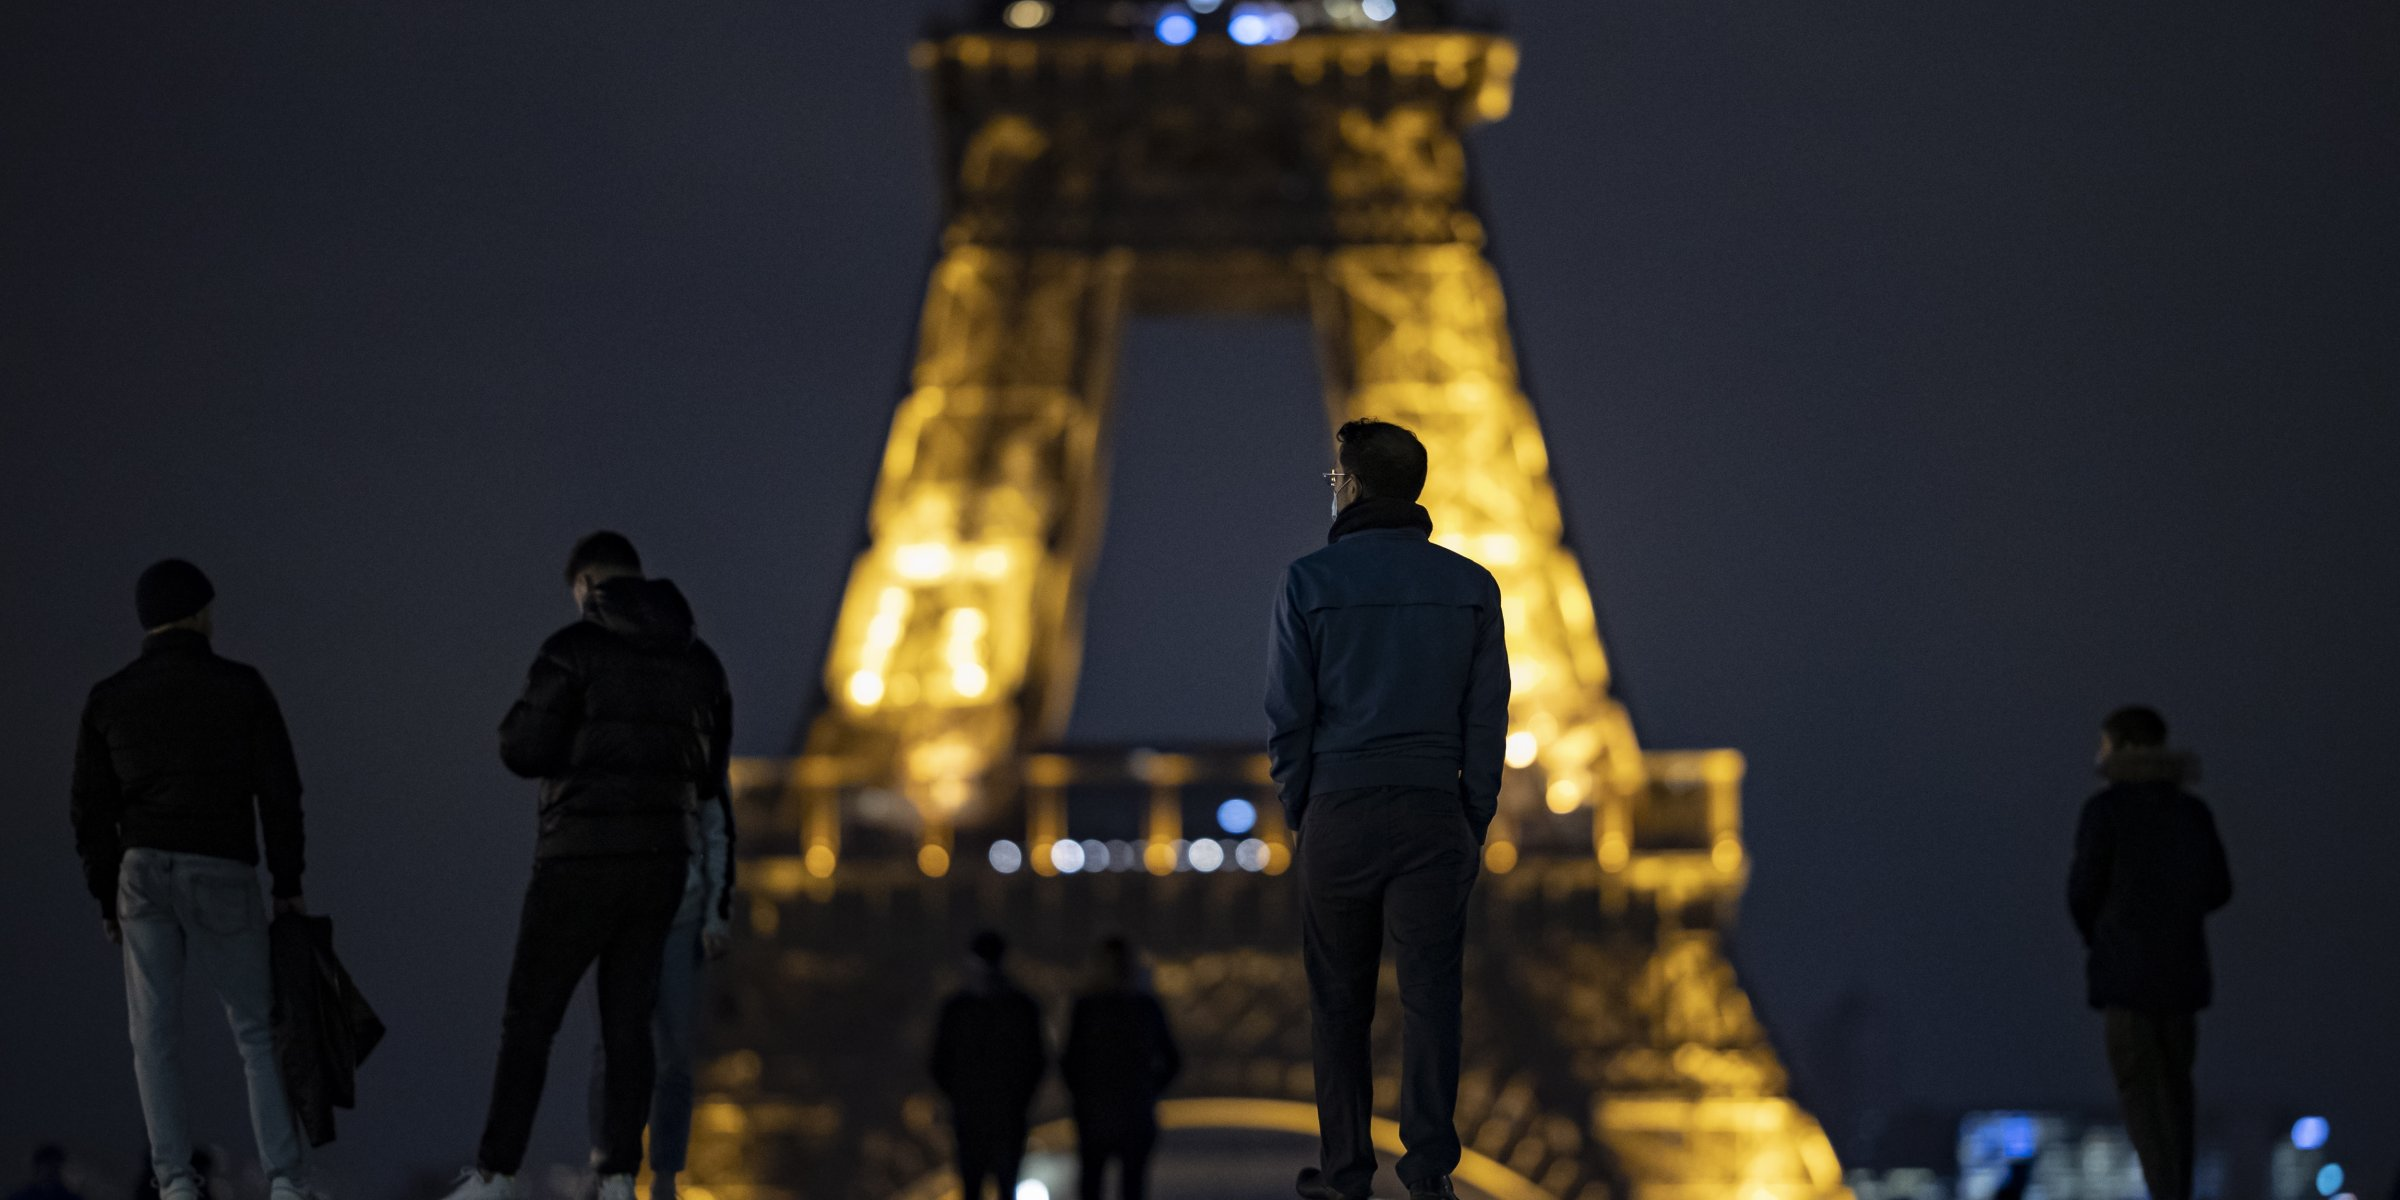 Eiffel Tower in Paris sees significant drop in visitor numbers due to tight coronavirus measures